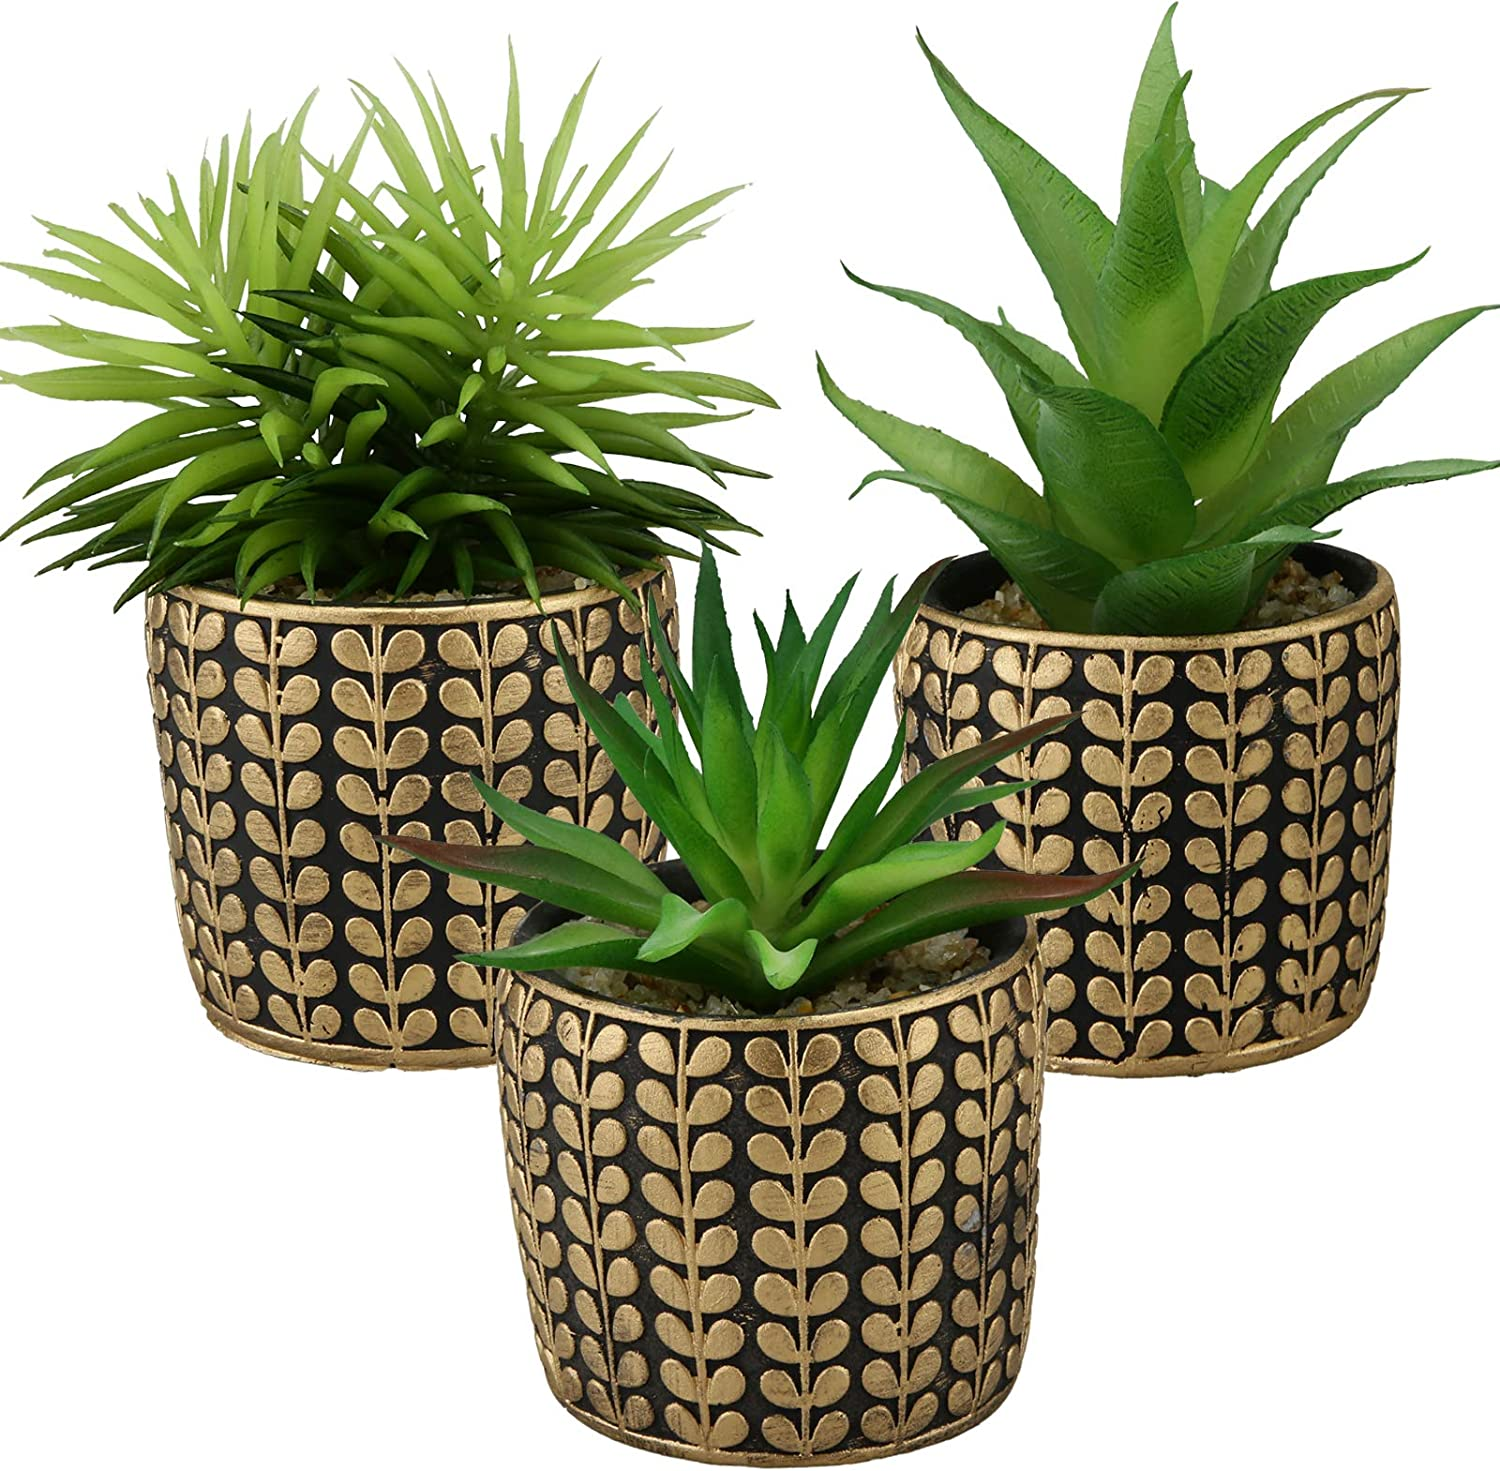 3 Pack Small Artificial Succulents Plants in Ceramics Pots for Desk Decor,Fake Succulents Potted with Handcrafted Clay,Faux Plant for Bathroom Indoor Shelf, Living Room,Office,Bedroom,home decorations